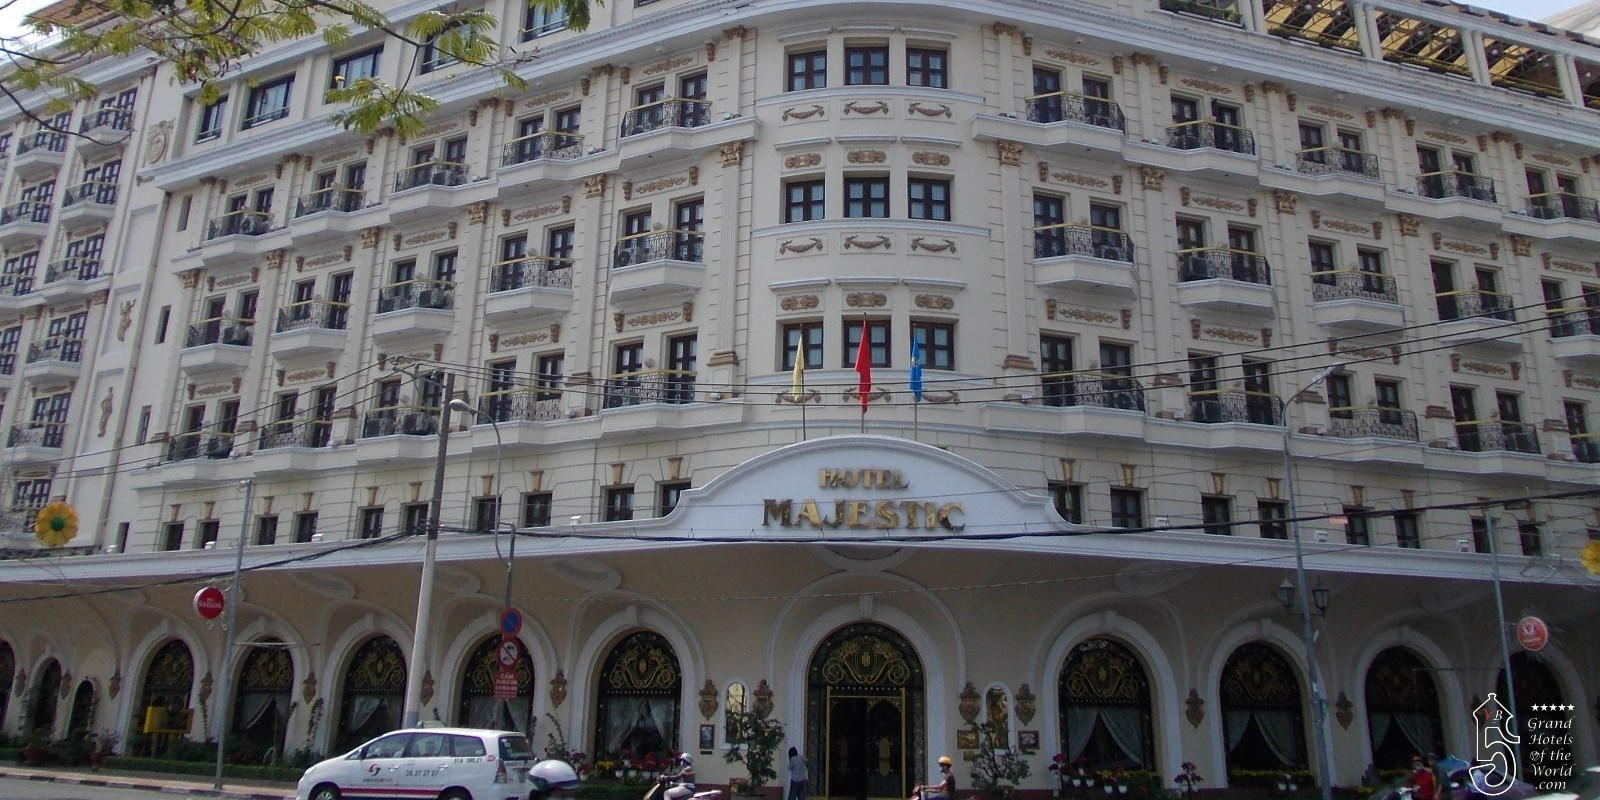 Hotel Majestic in Ho Chi Minh